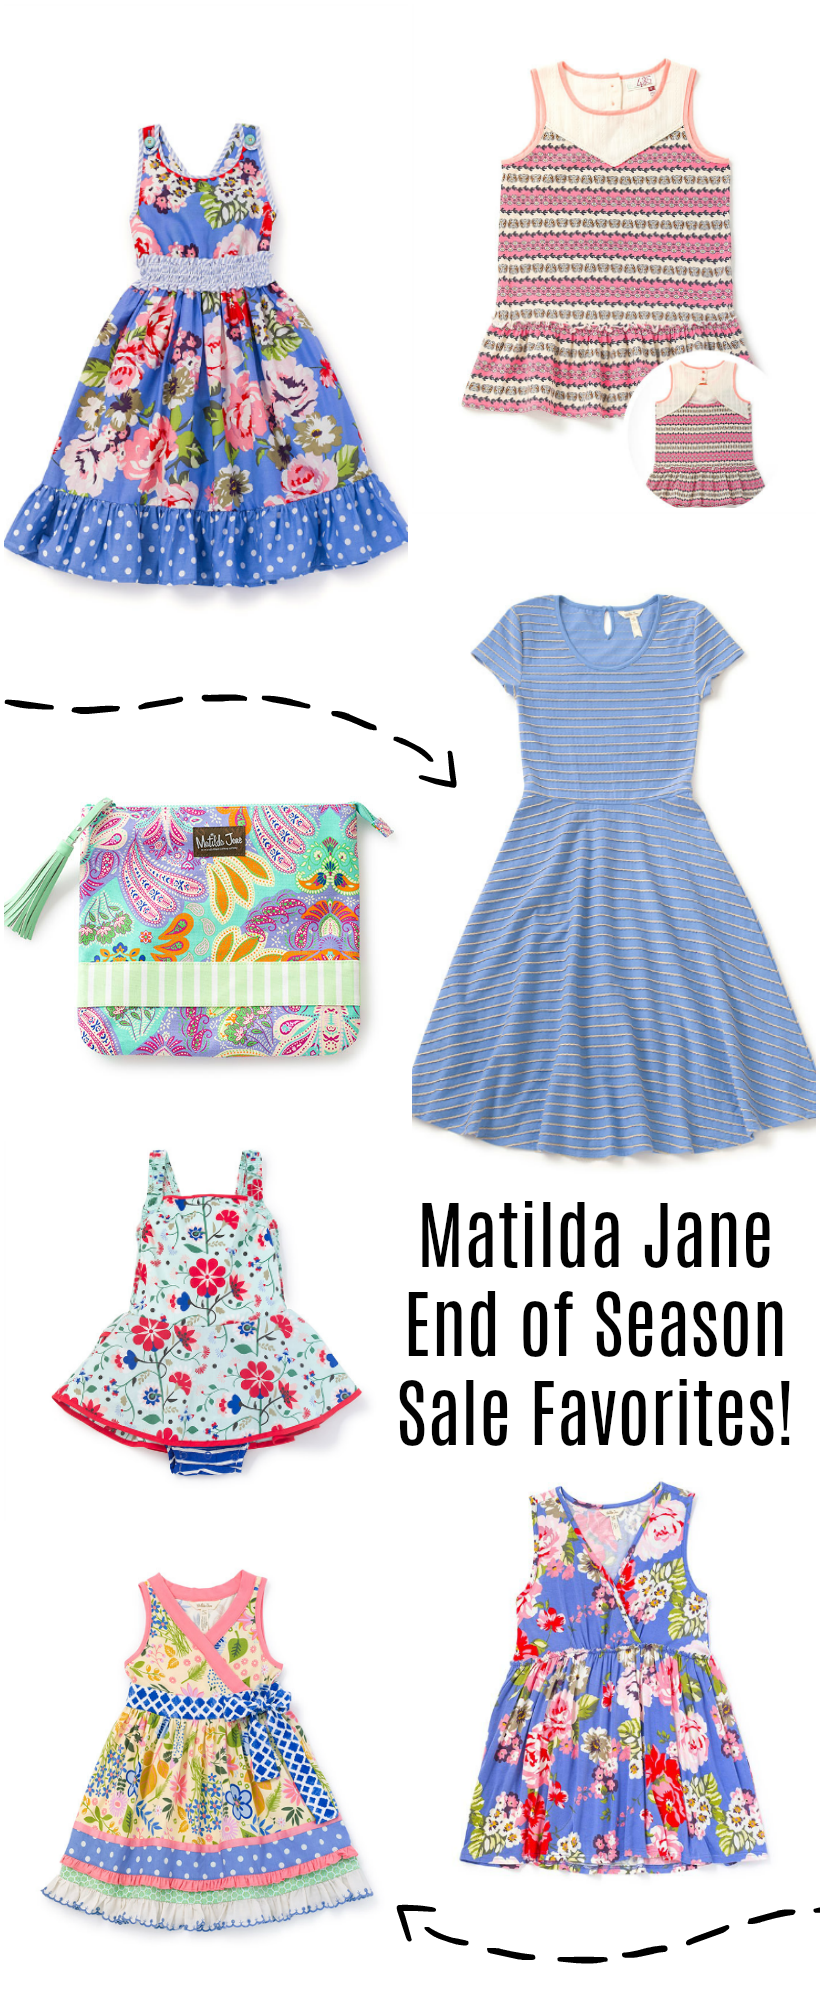 Matilda Jane End of Season Sale Favorites!